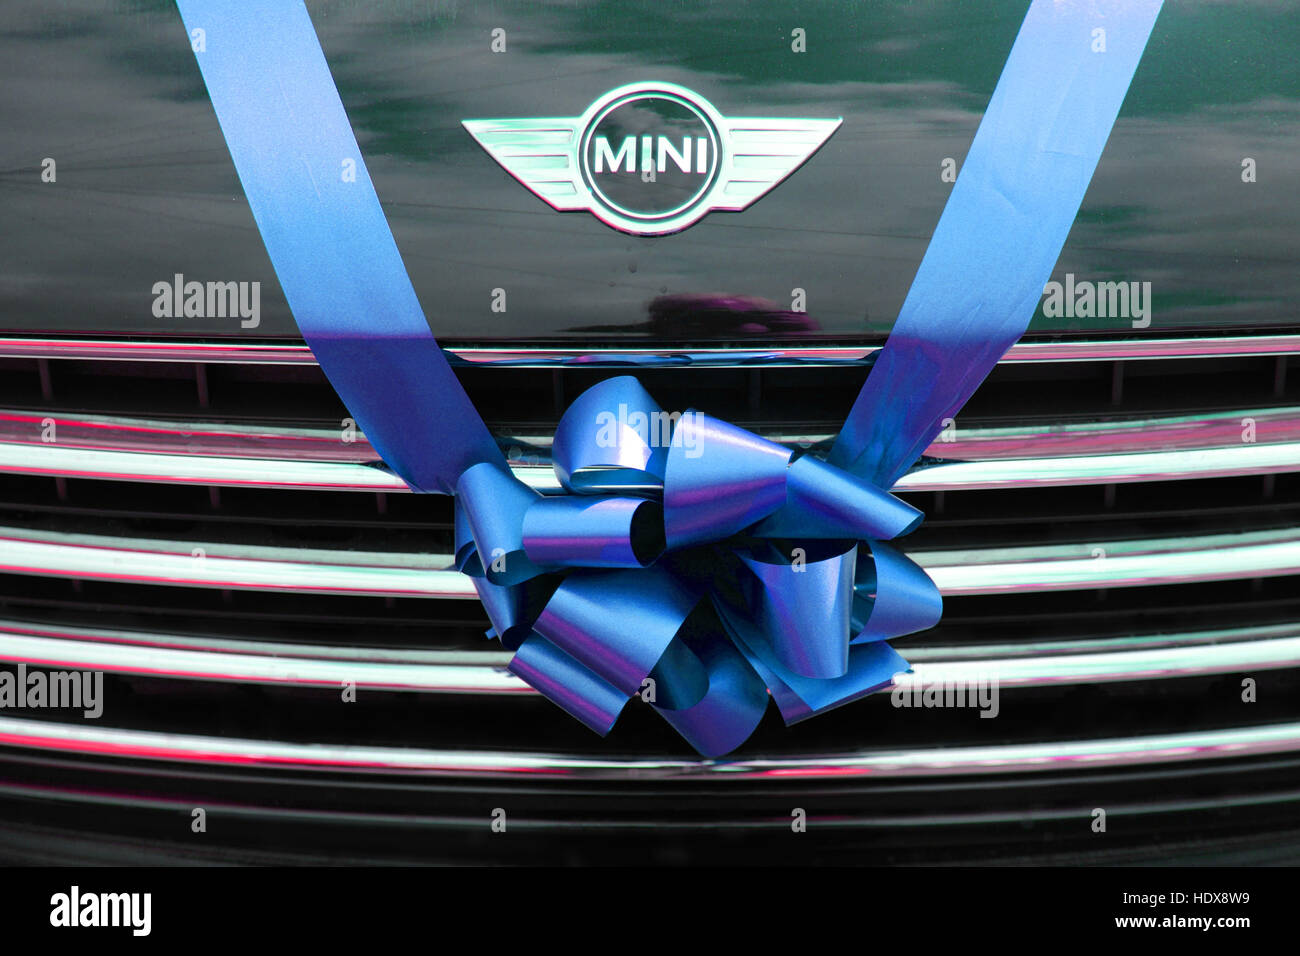 BMW Mini used as a wedding car, tied with a blue ribbon and bow over the radiator grill. - Stock Image